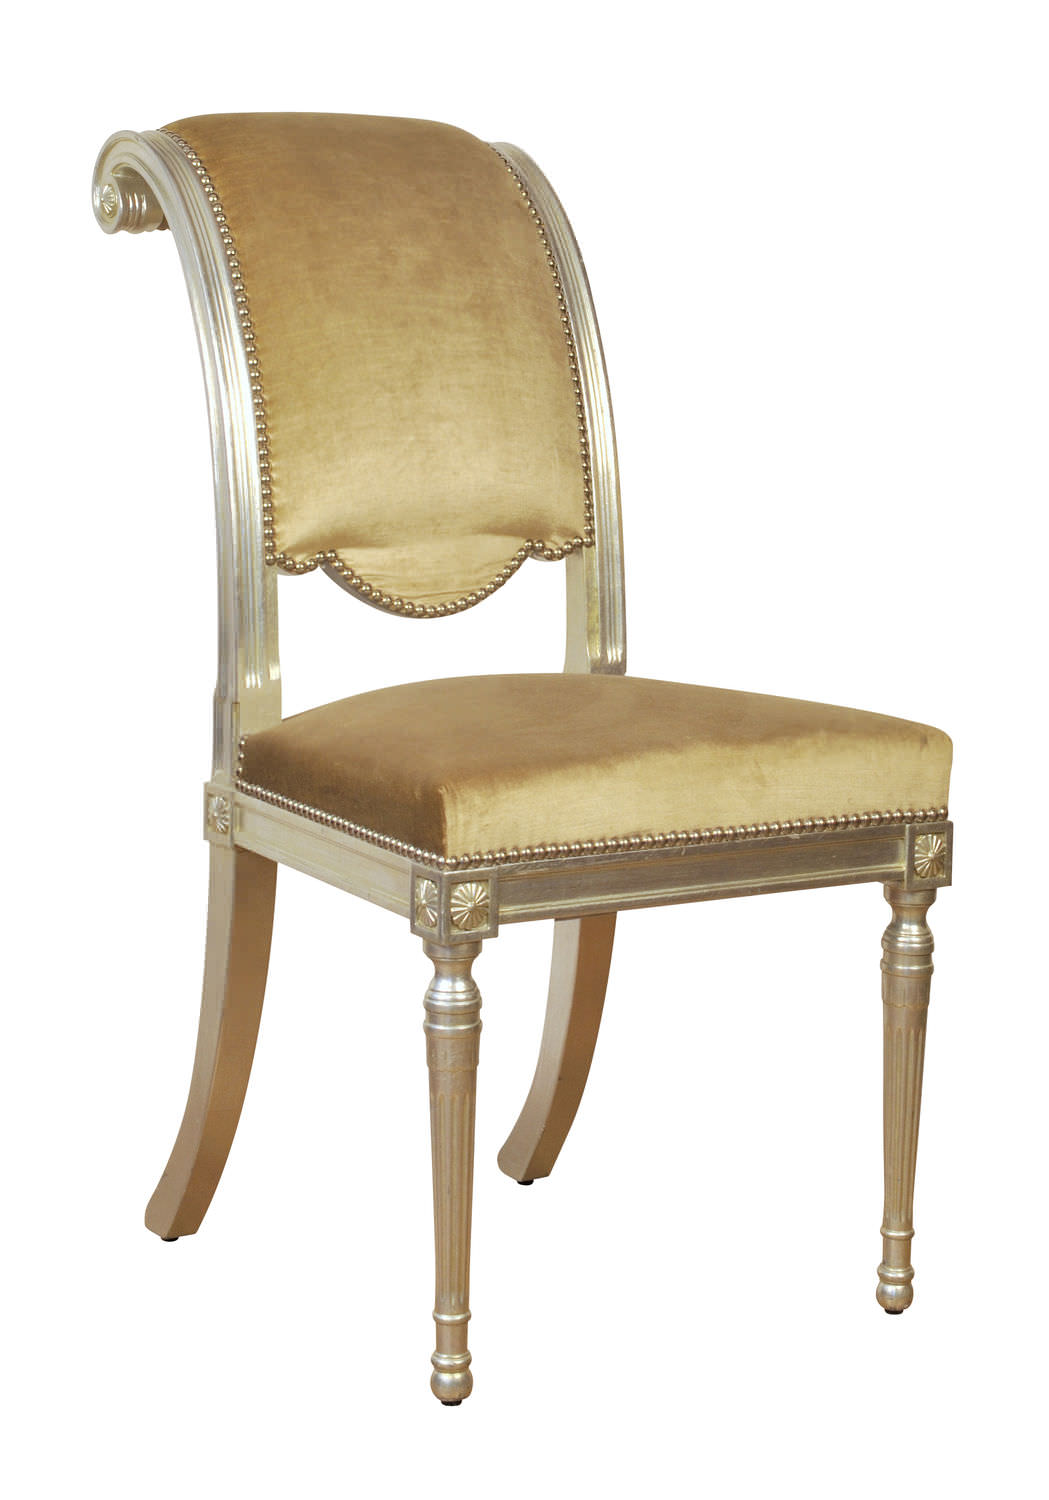 Super Directoire Style Chair Upholstered Wooden Bellanger Pabps2019 Chair Design Images Pabps2019Com